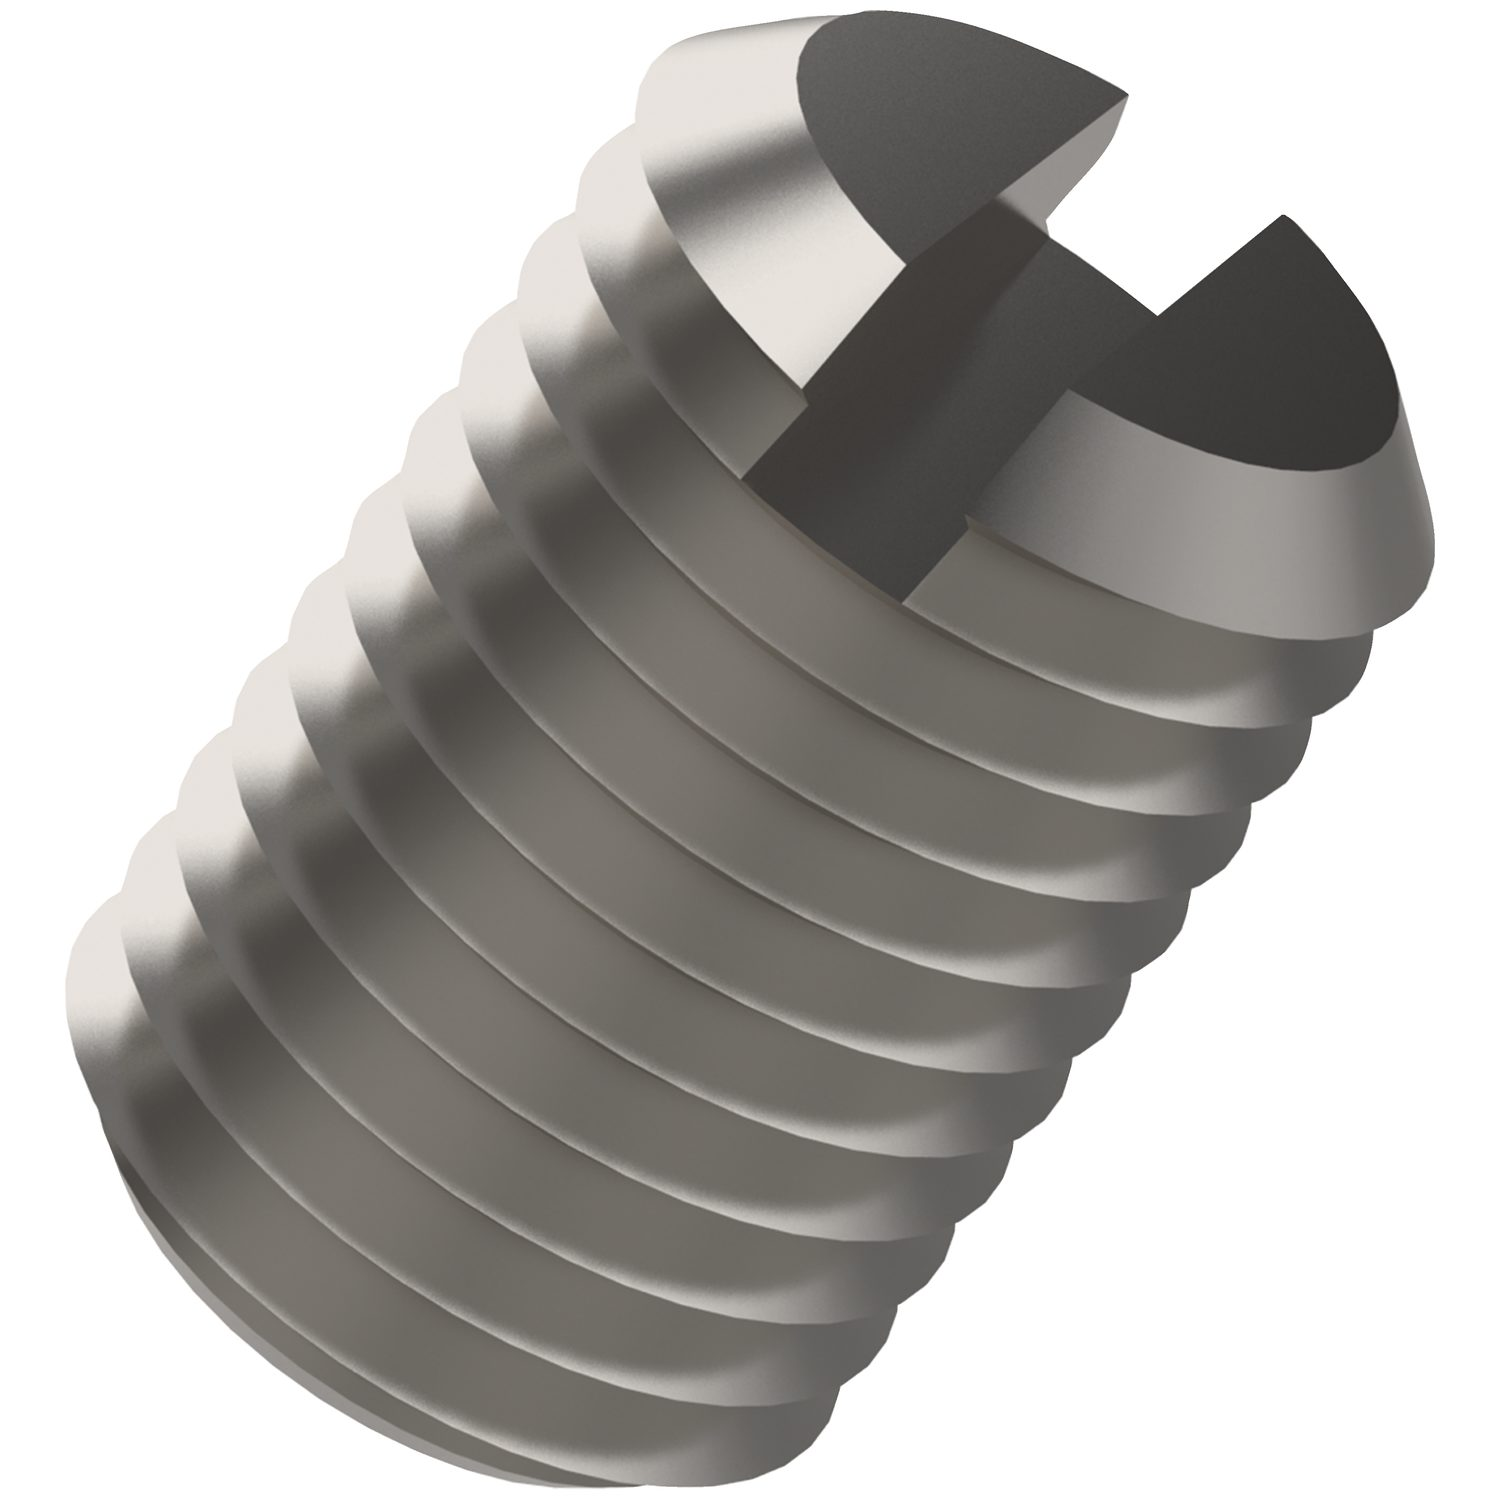 P0277.A4 - Slotted Set Screws Flat Point